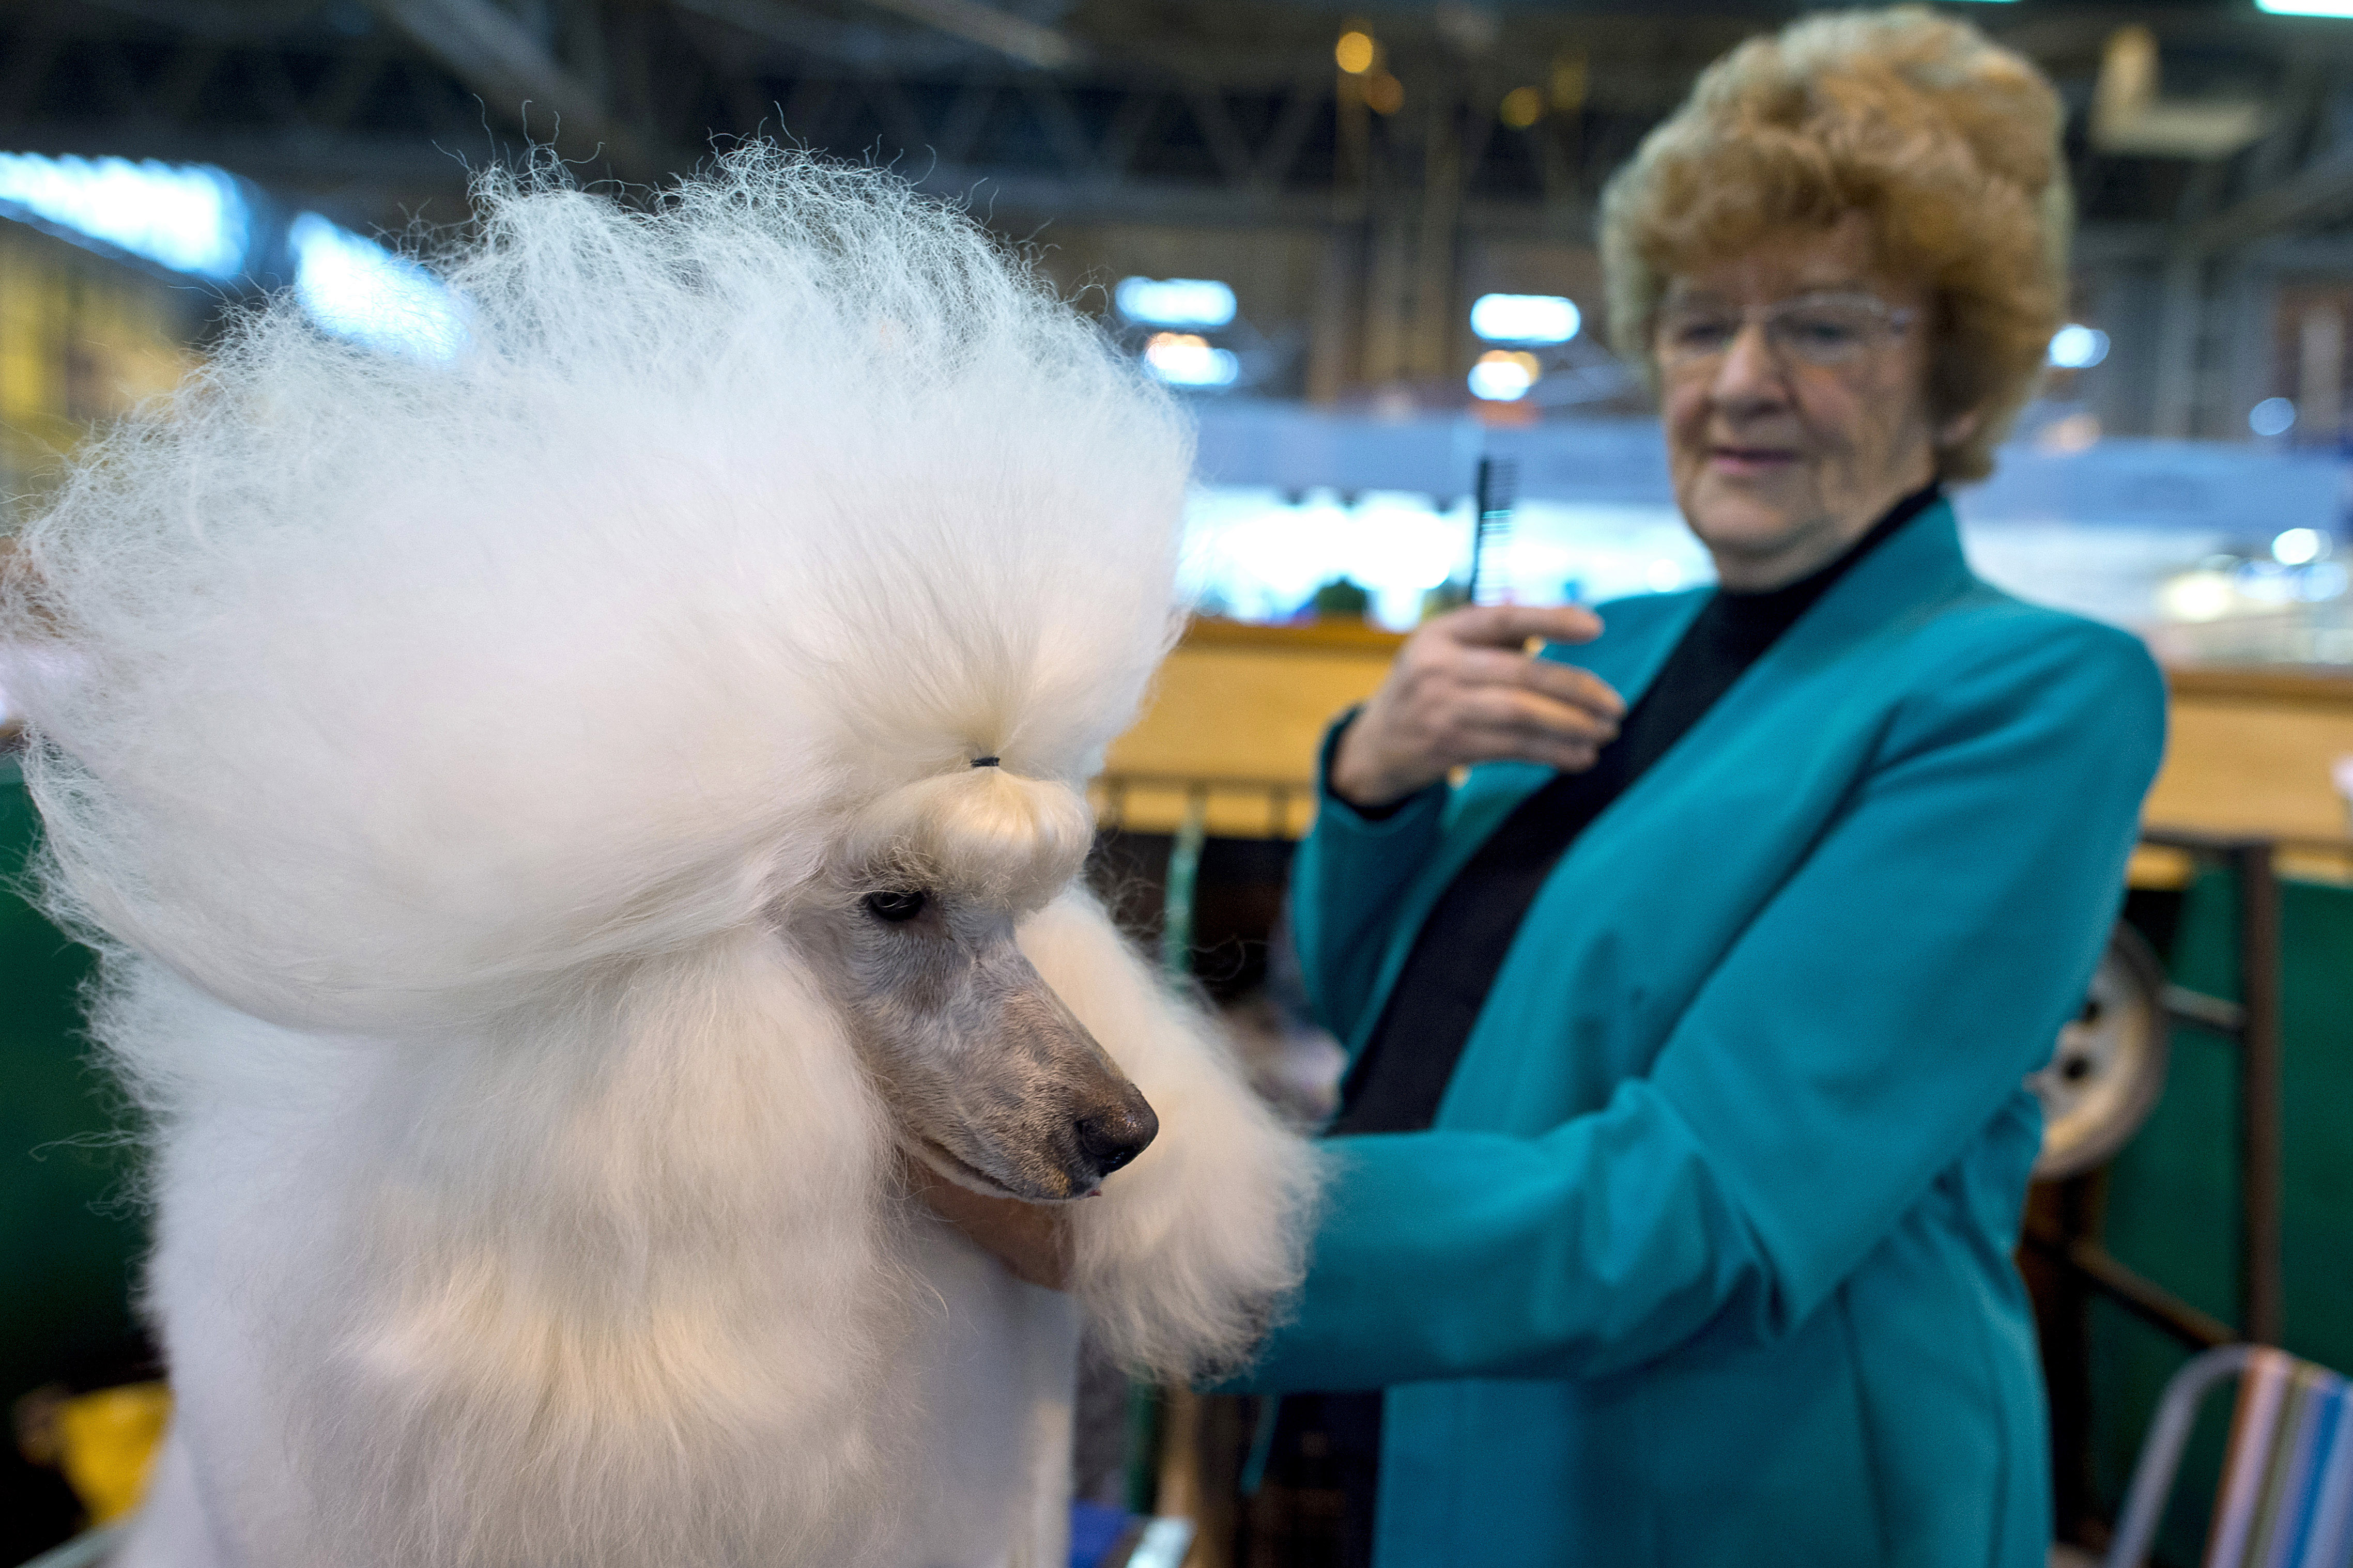 A poodle is groomed by its owner on the first day of Crufts Dog Show in Birmingham, England, on March 10, 2016.